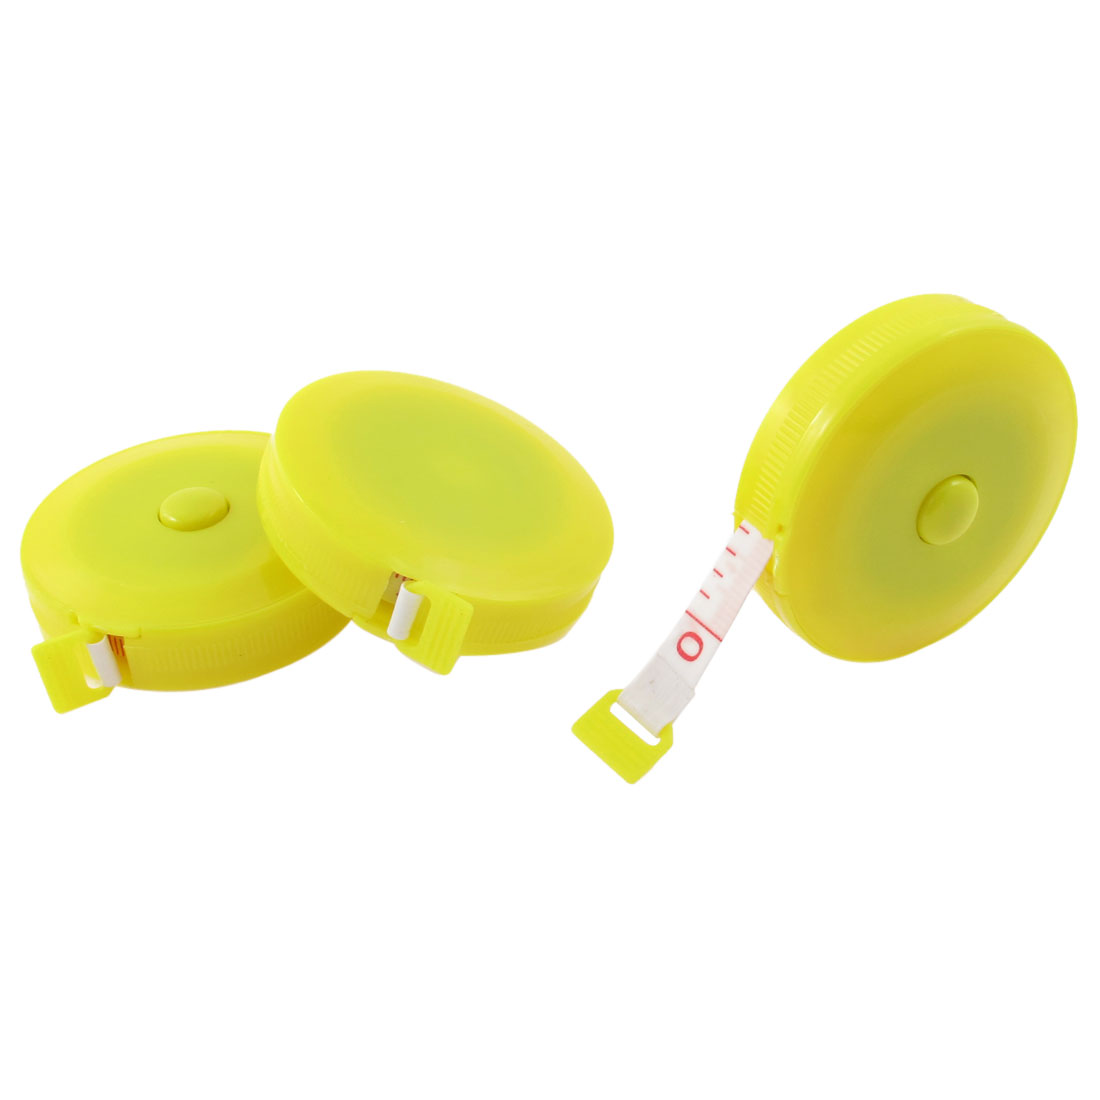 3 Pcs Yellow Round Retractable Tailors Sewing Measuring Tape Ruler 150cm 45cun